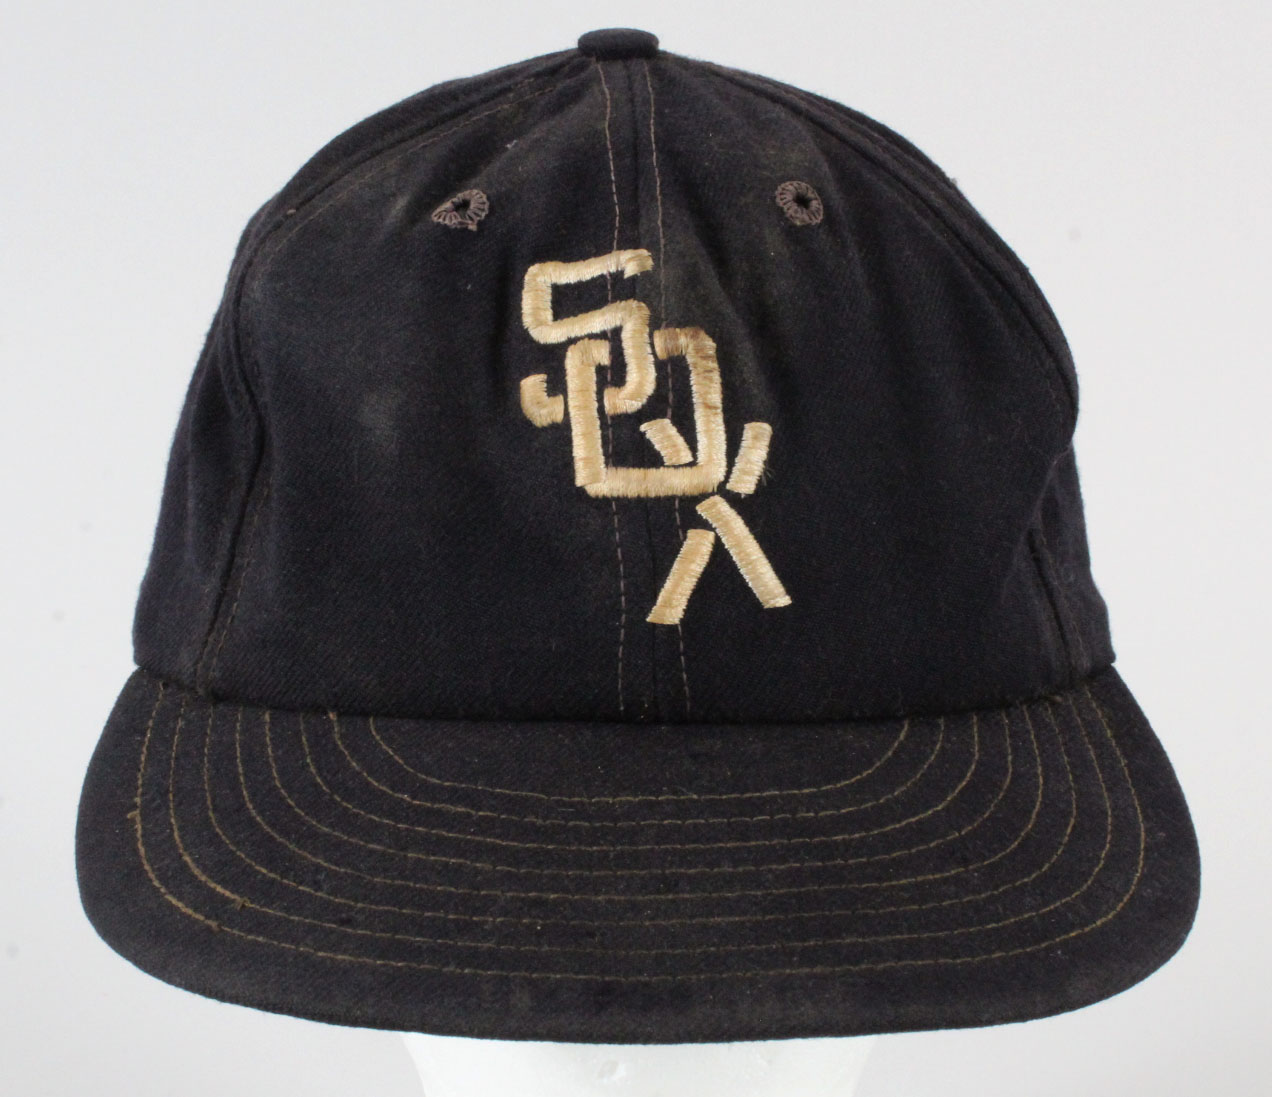 769e5a843057a0 1960's Eddie Stanky Game-Used Baseball Hat- White Sox COA 100% Authentic  Team